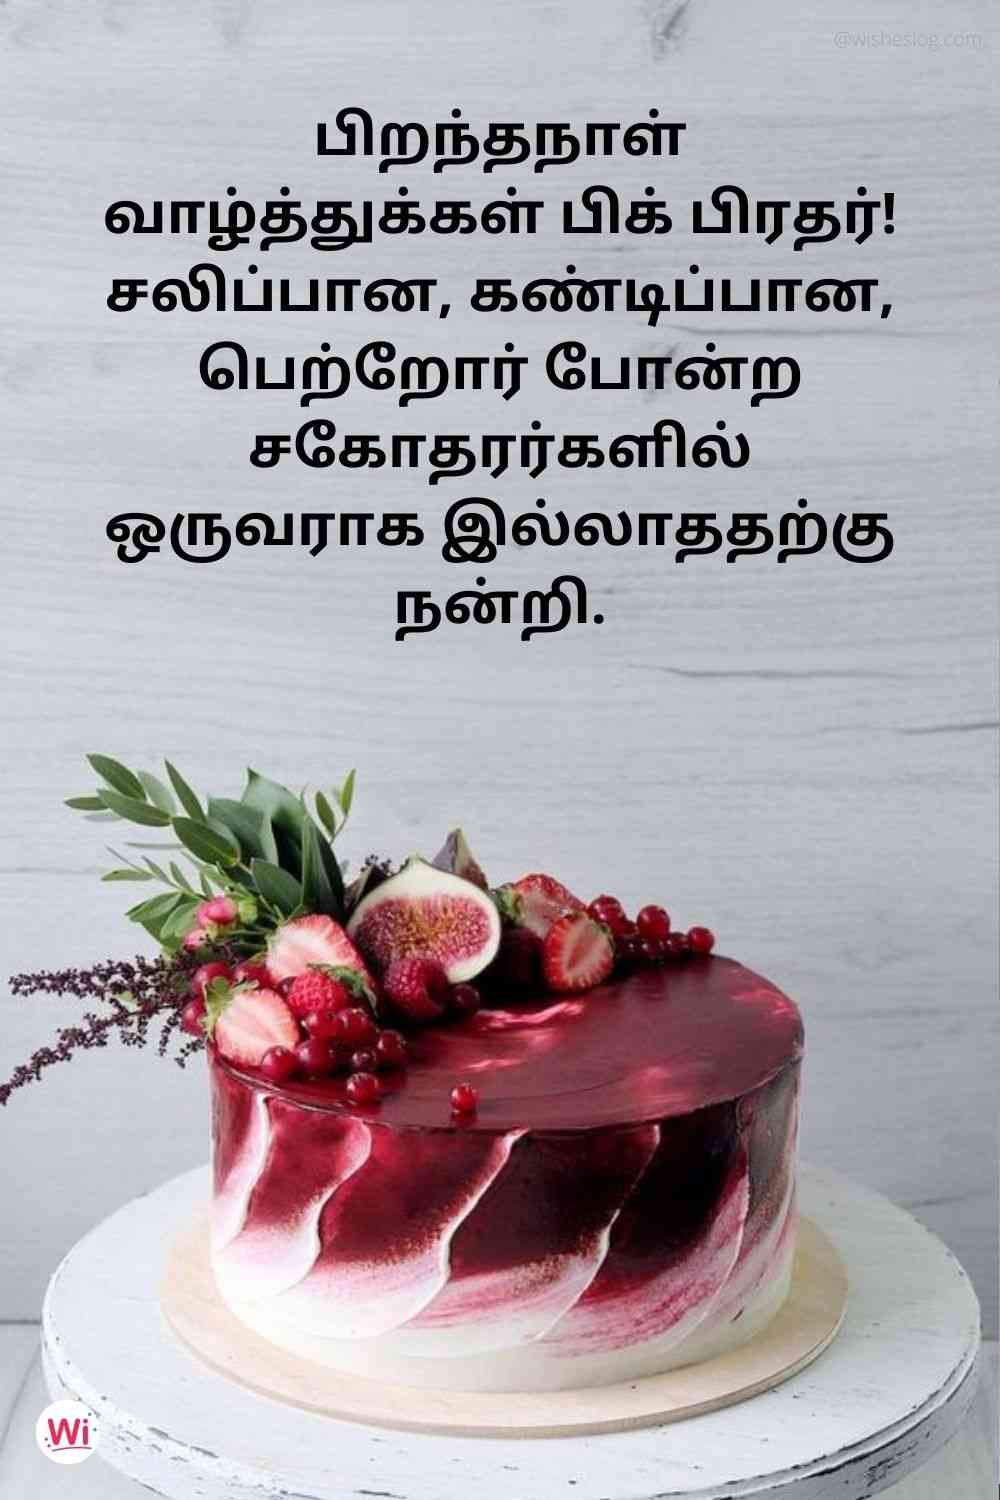 birthday wishes for elder brother in tamil